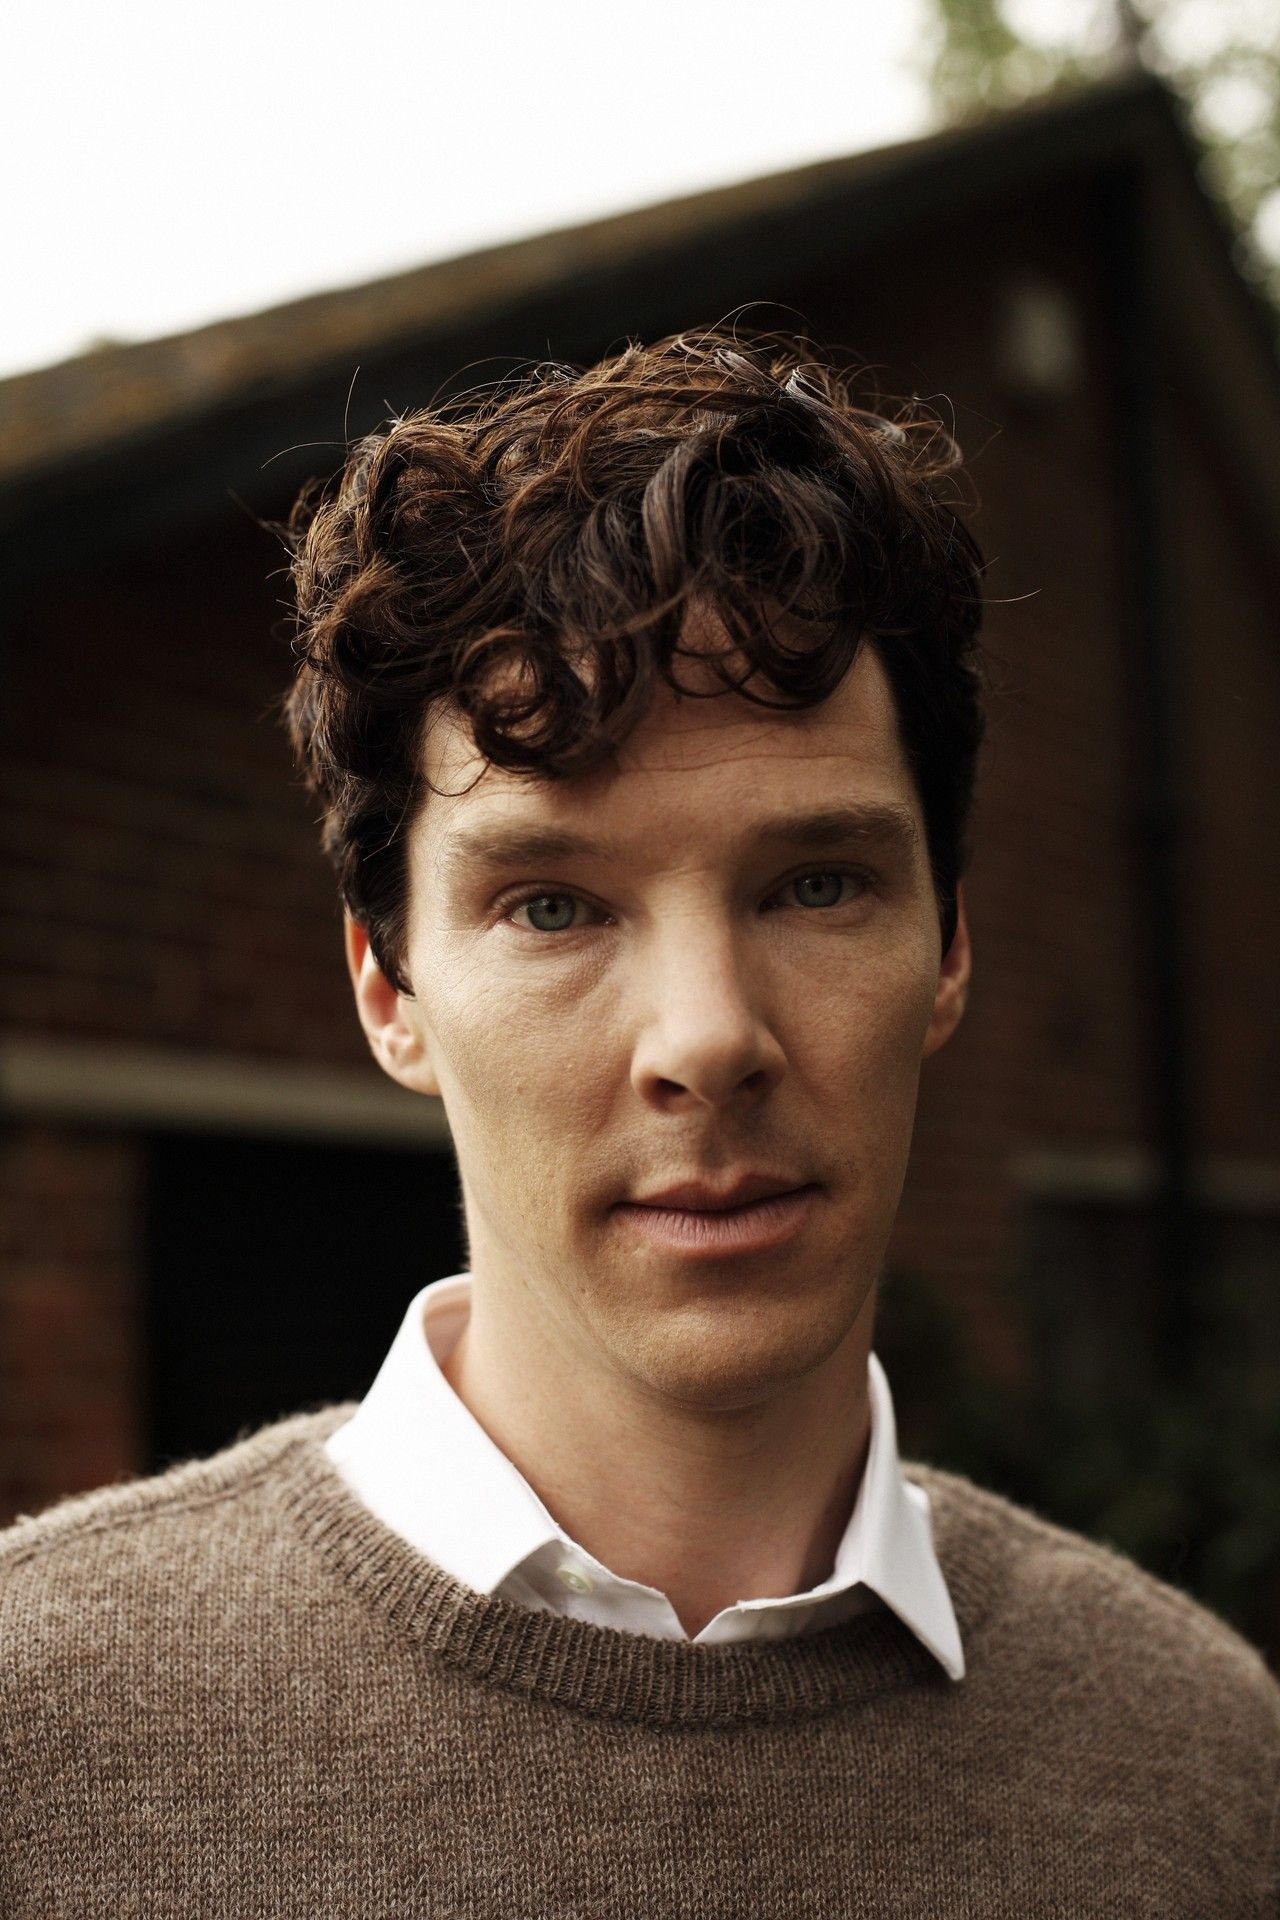 Photoshoot for The Sunday Times - Benedict Cumberbatch